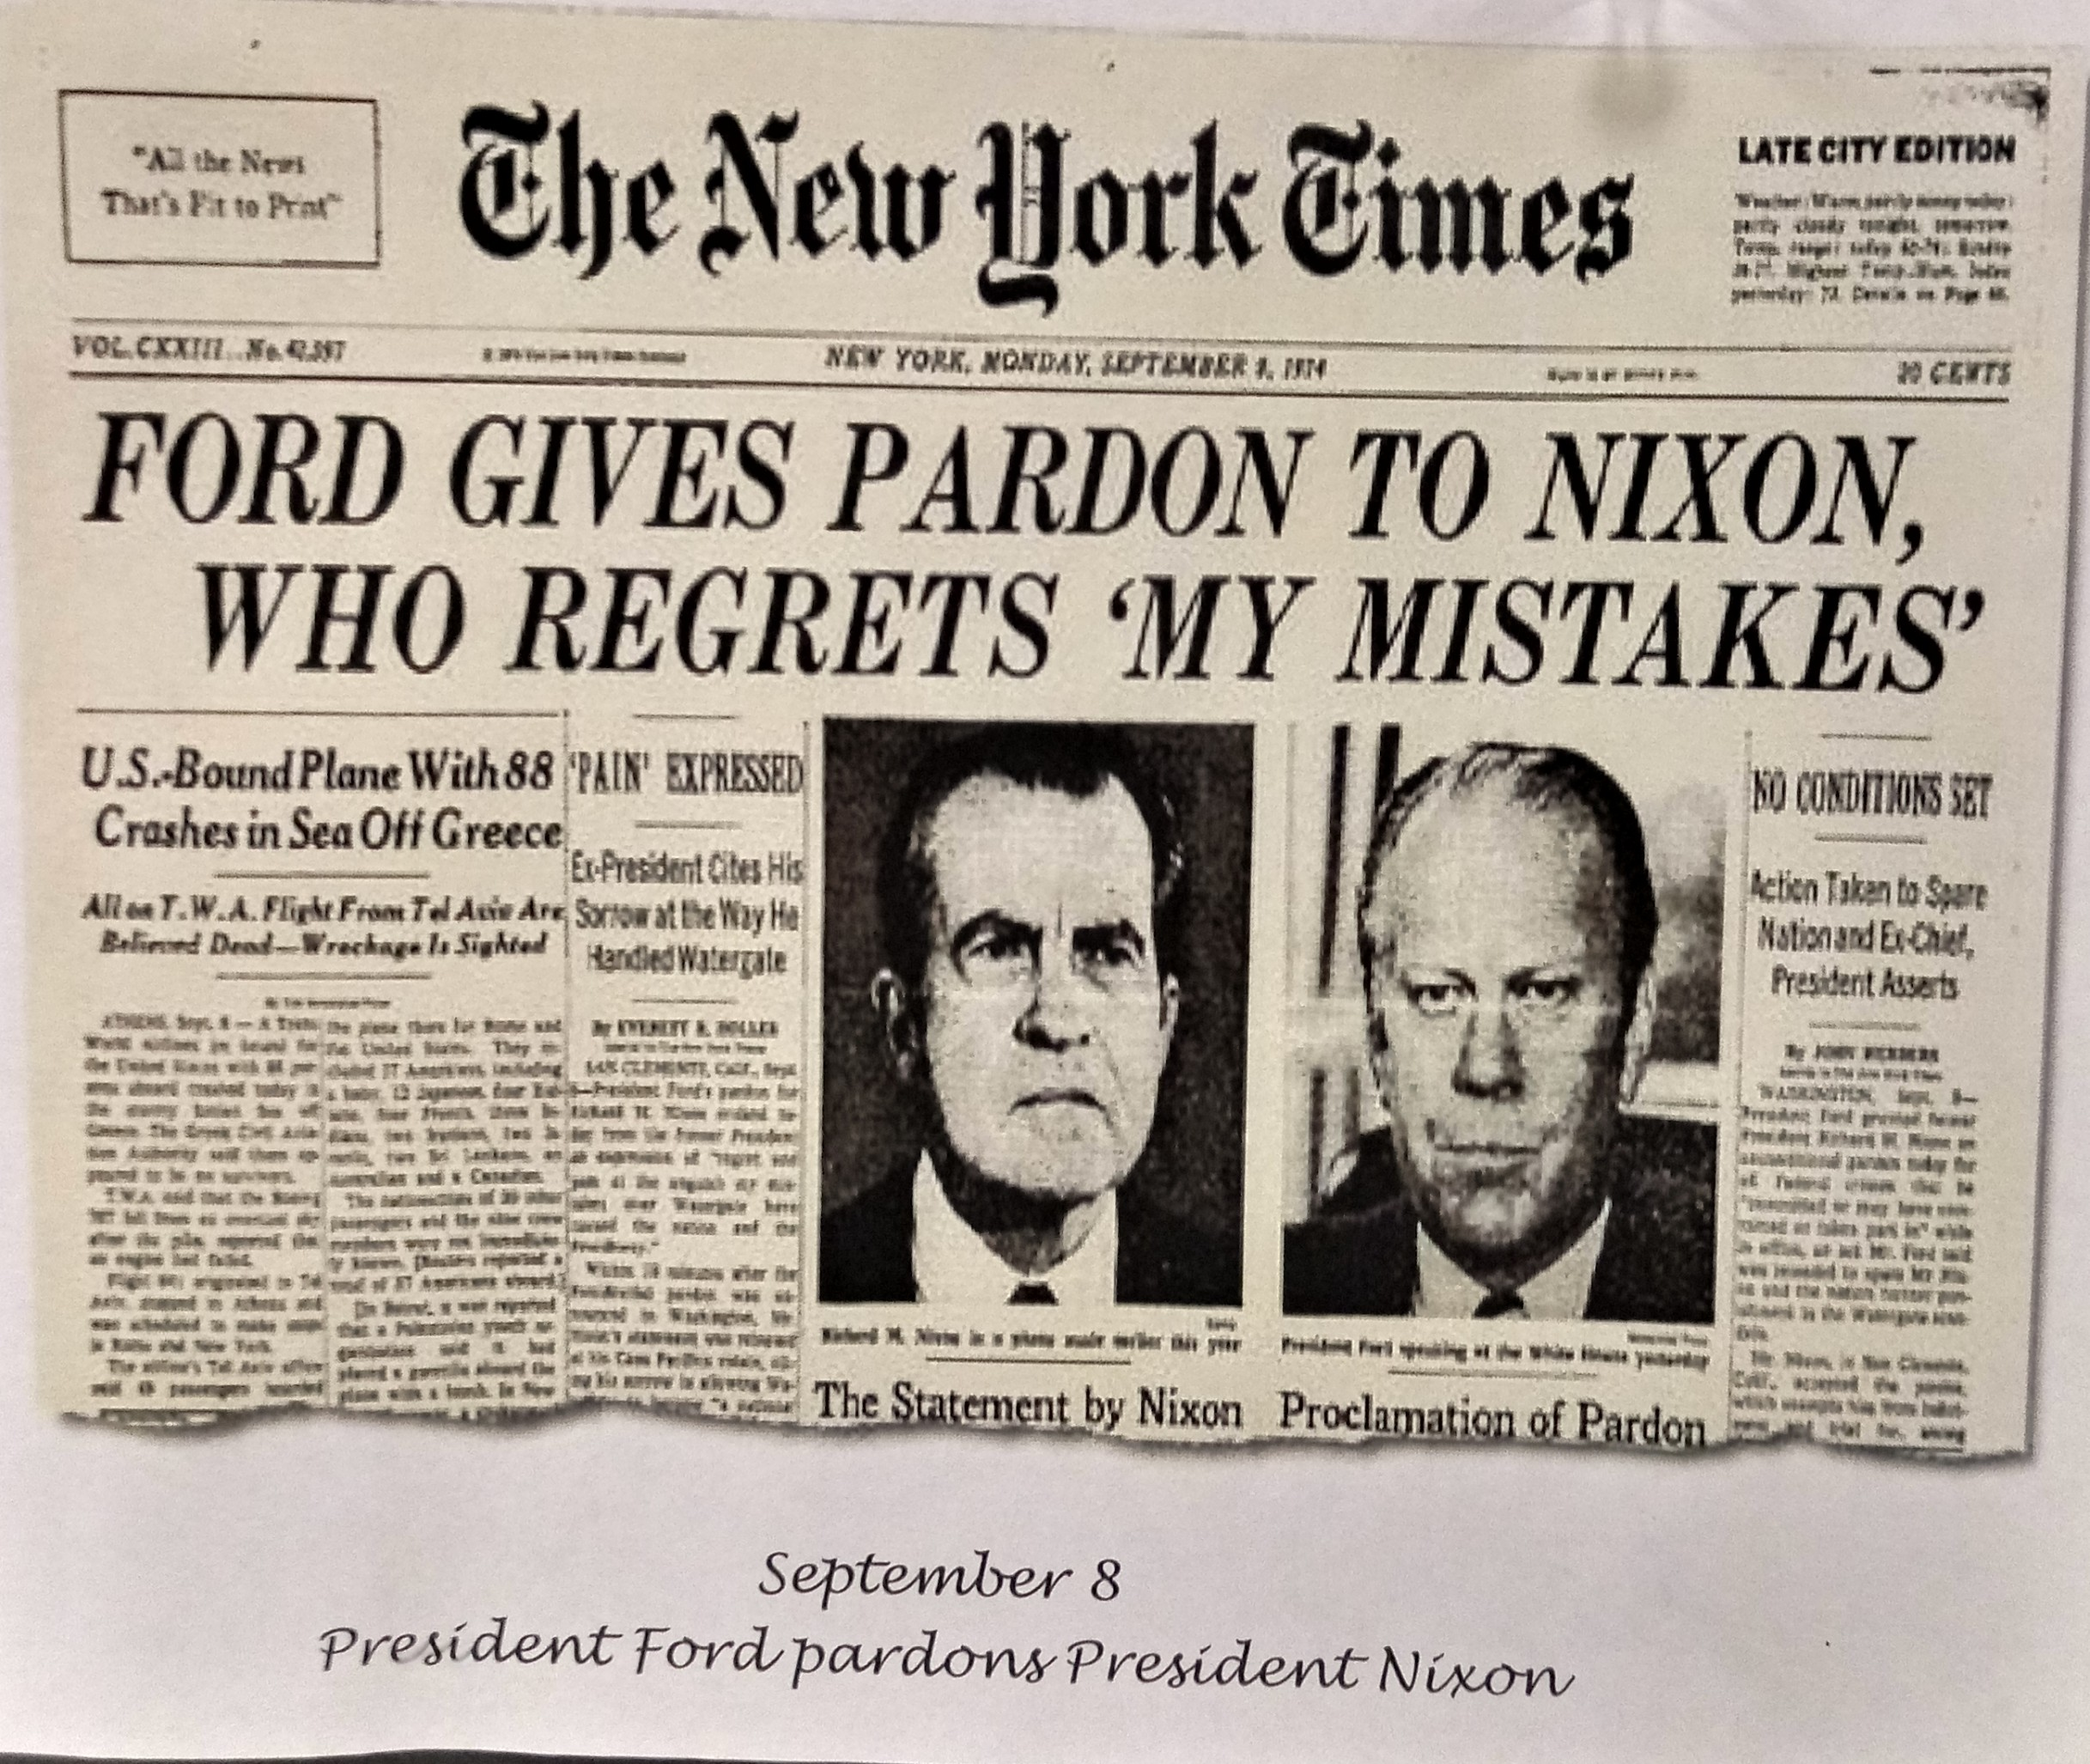 """Reproduction of page 1 of the New York Times, banner headline, """"FORD GIVES PARDON TO NIXON, WHO REGRETS 'MY MISTAKES."""""""